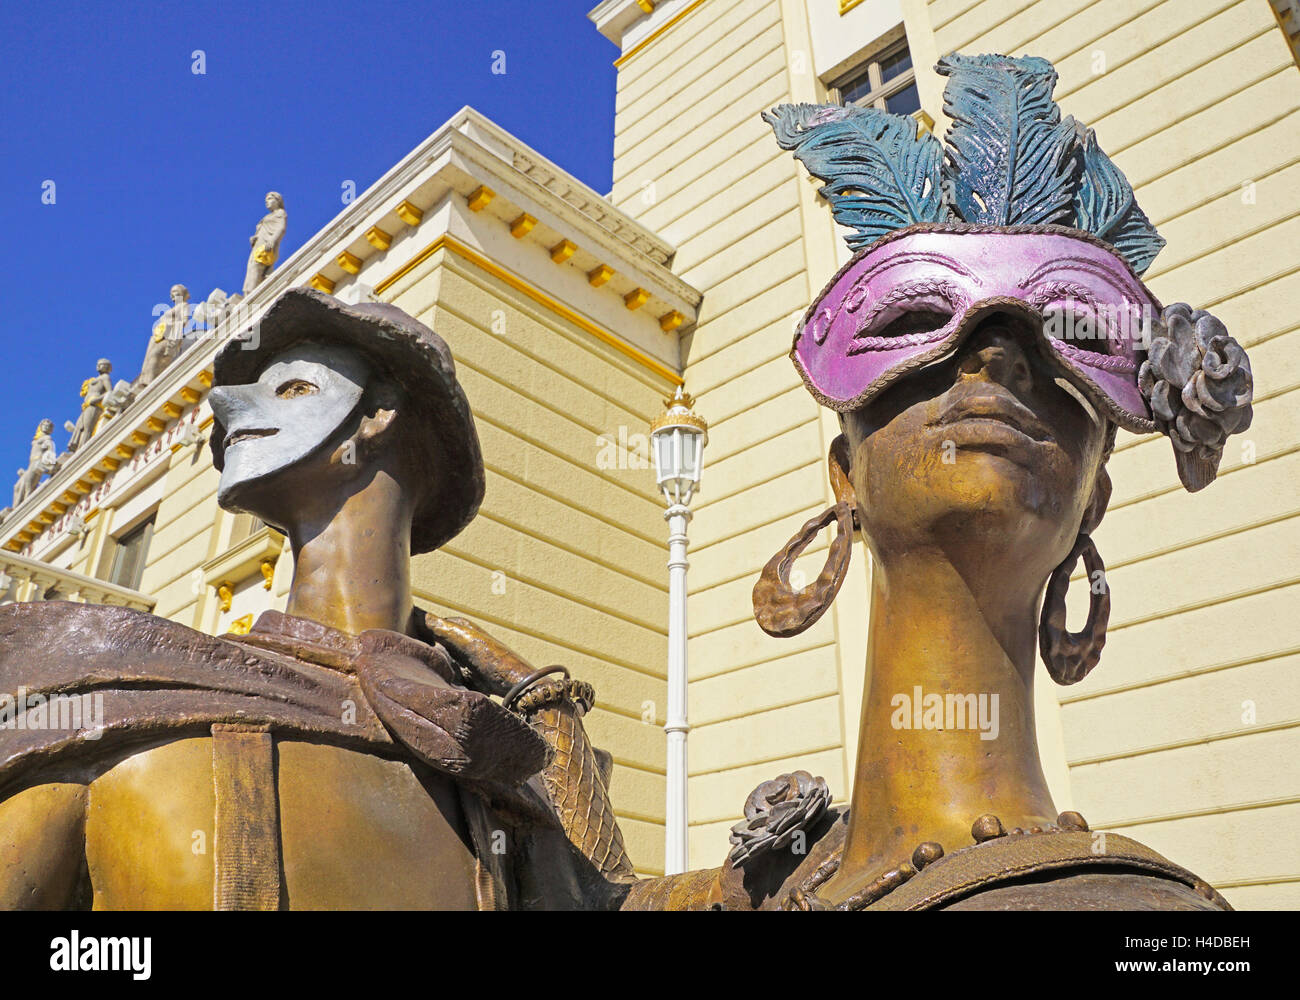 Statues at Macedonian National Theater in Skopje. - Stock Image